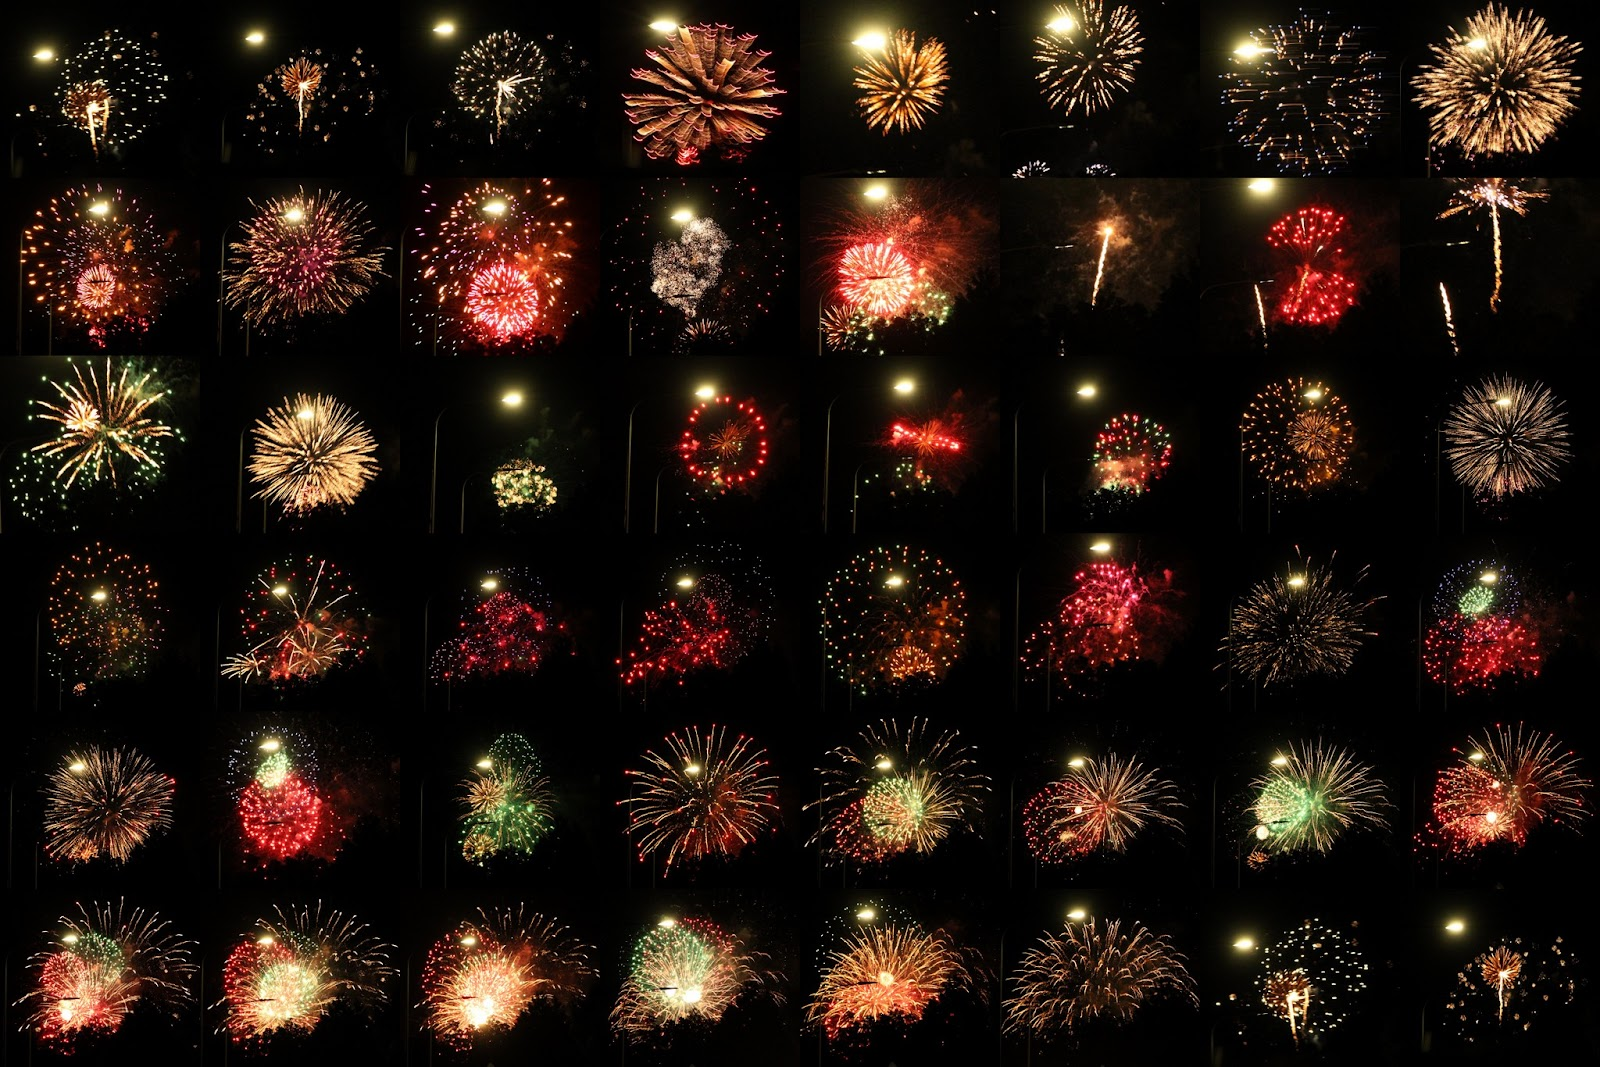 heres a montage of fireworks display last night in hagley park as seen from the comfort of our front lawn